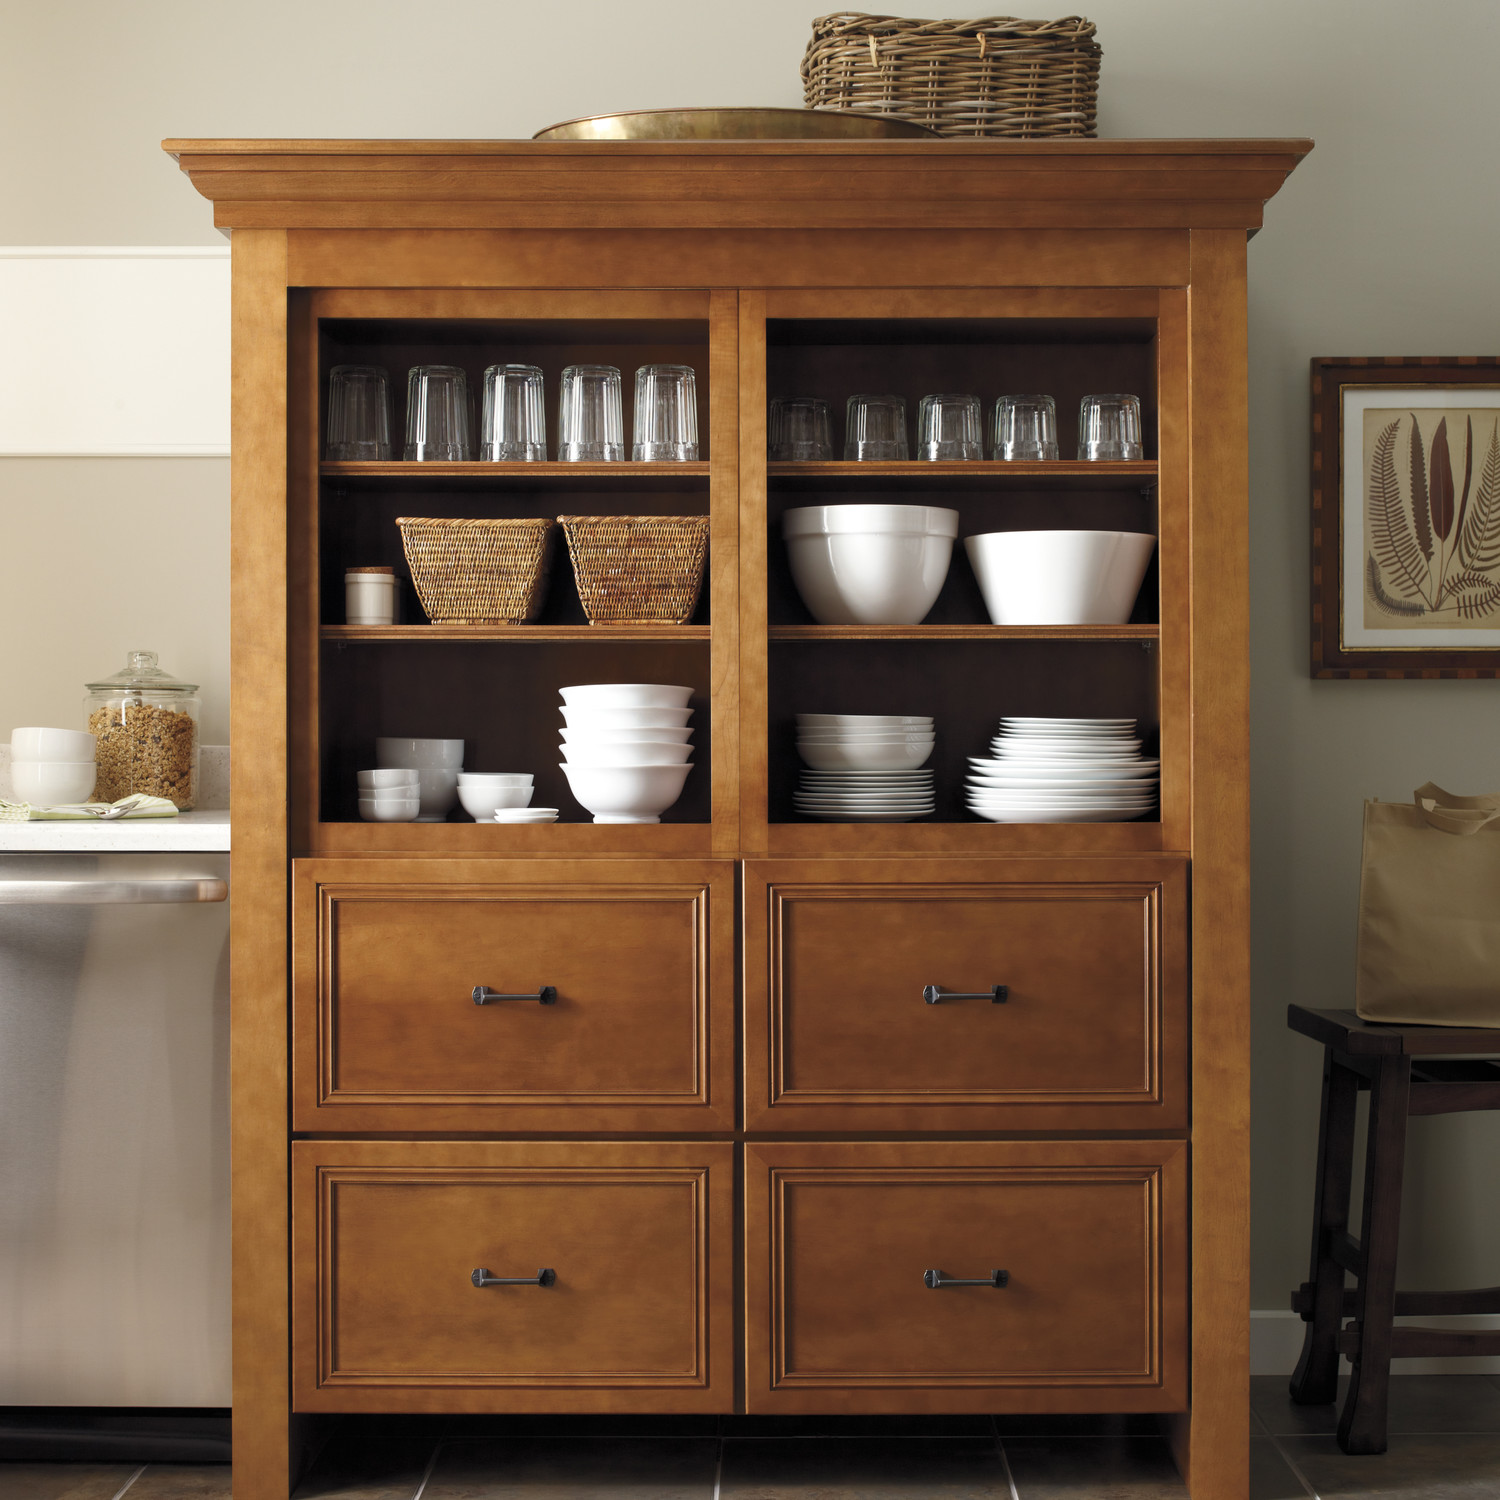 Pantry Cabinet: Home Depot Pantry Cabinet with Martha Stewart ...